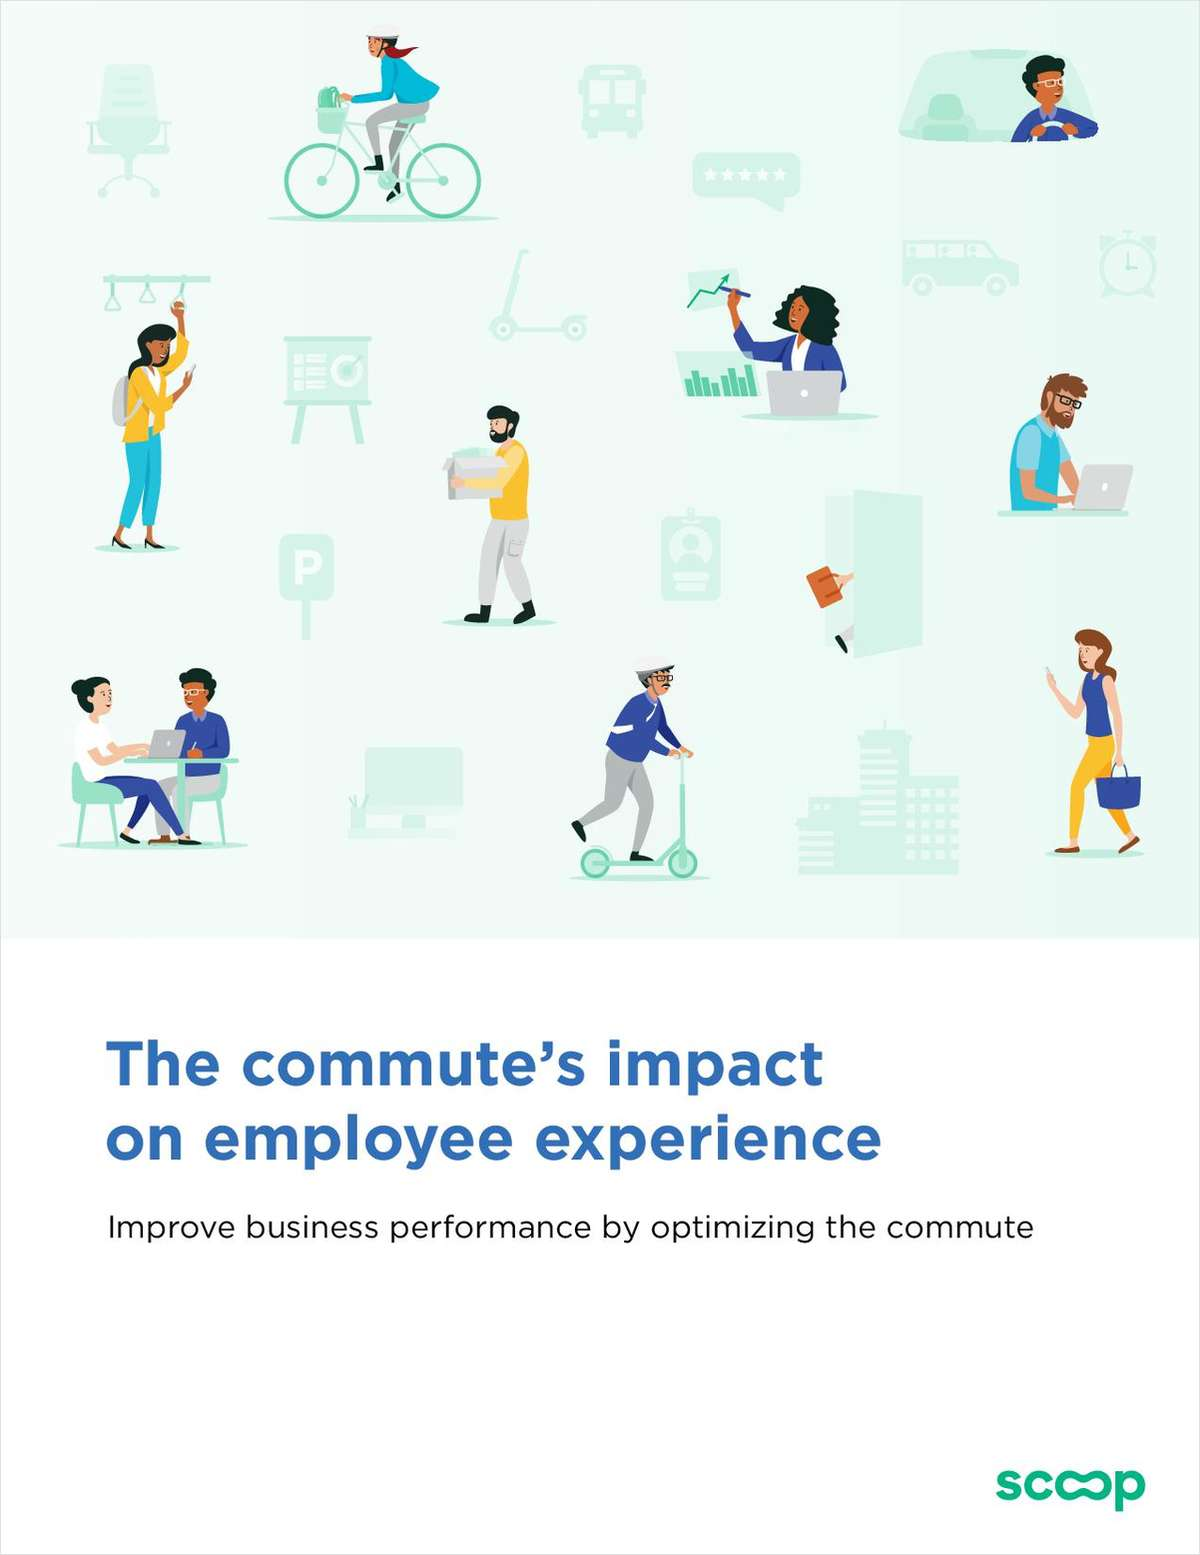 The Commute's Impact on Employee Experience